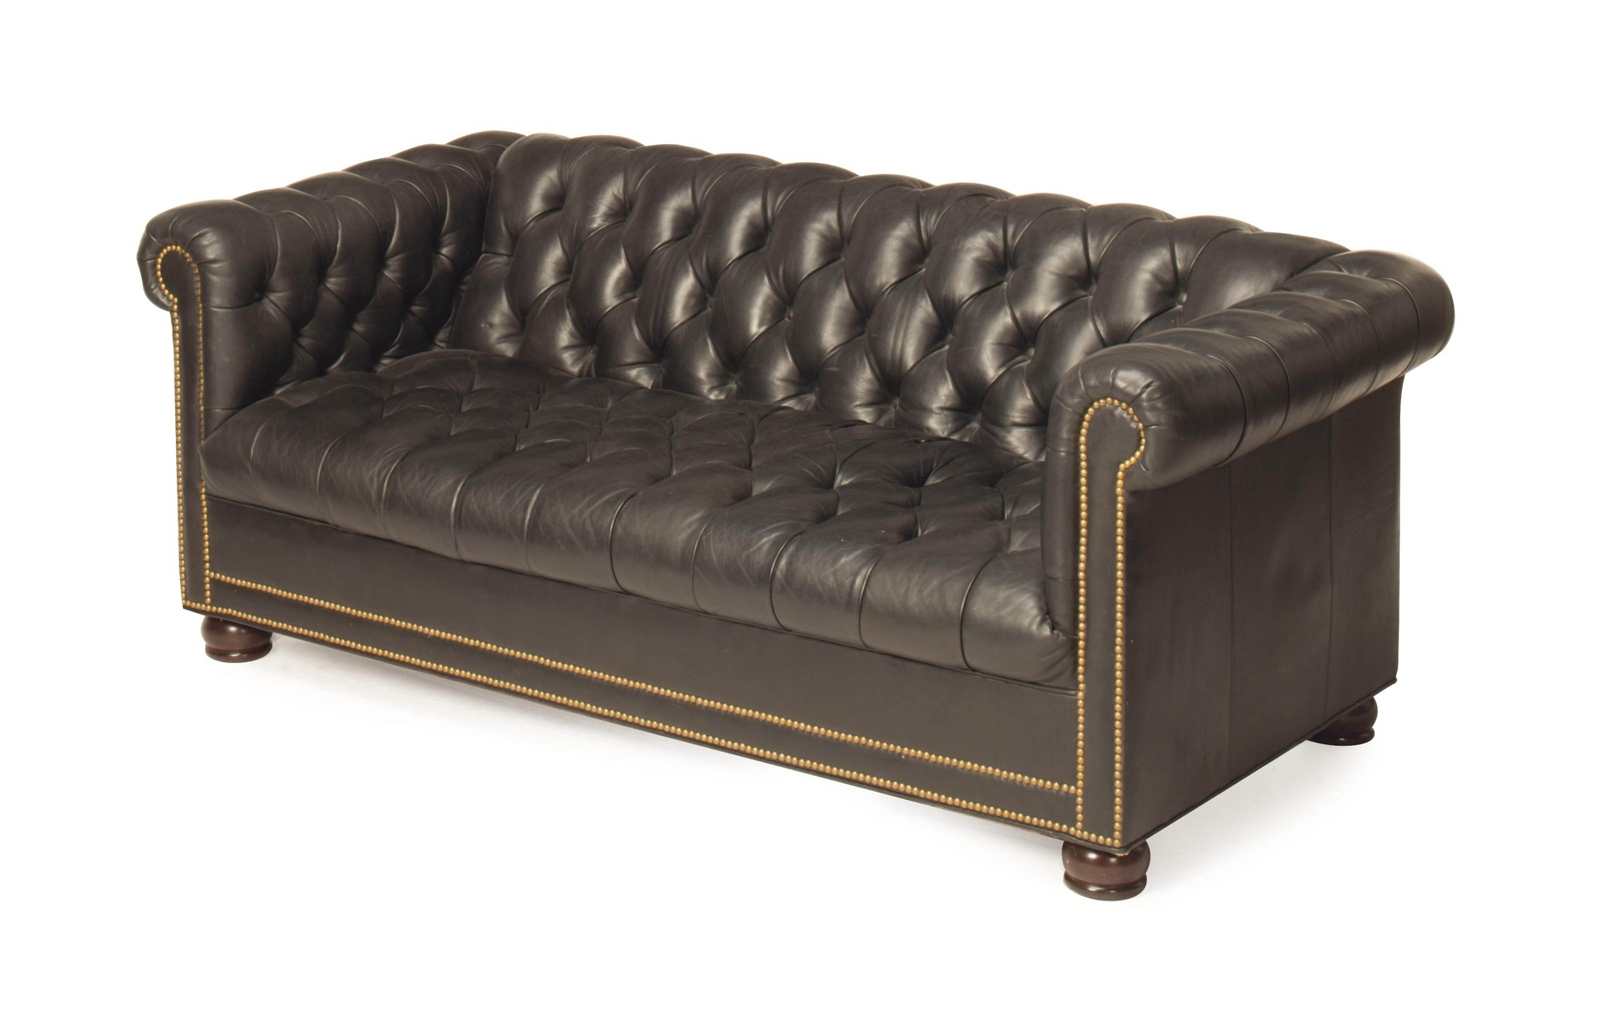 a modern black leather upholstered button tufted chesterfield style sofa interiors auction. Black Bedroom Furniture Sets. Home Design Ideas